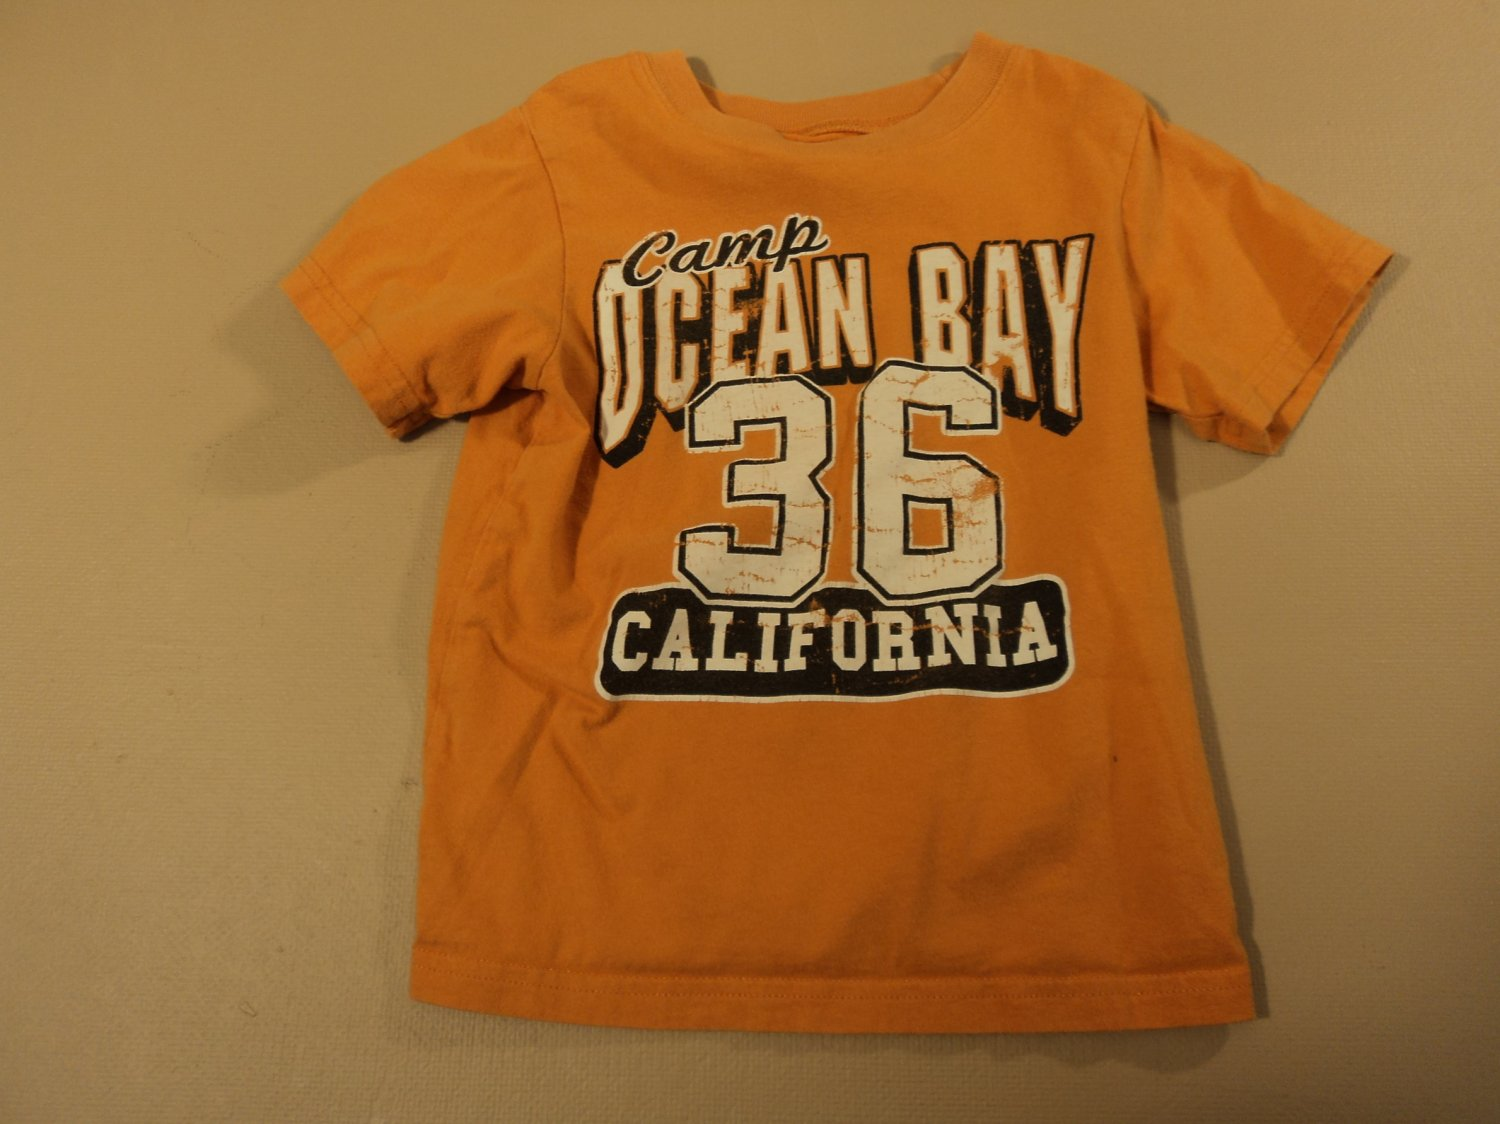 Place T-Shirt Boys' Camp Ocean Bay 100% Cotton Male Kids 2-4 3T Oranges Solid